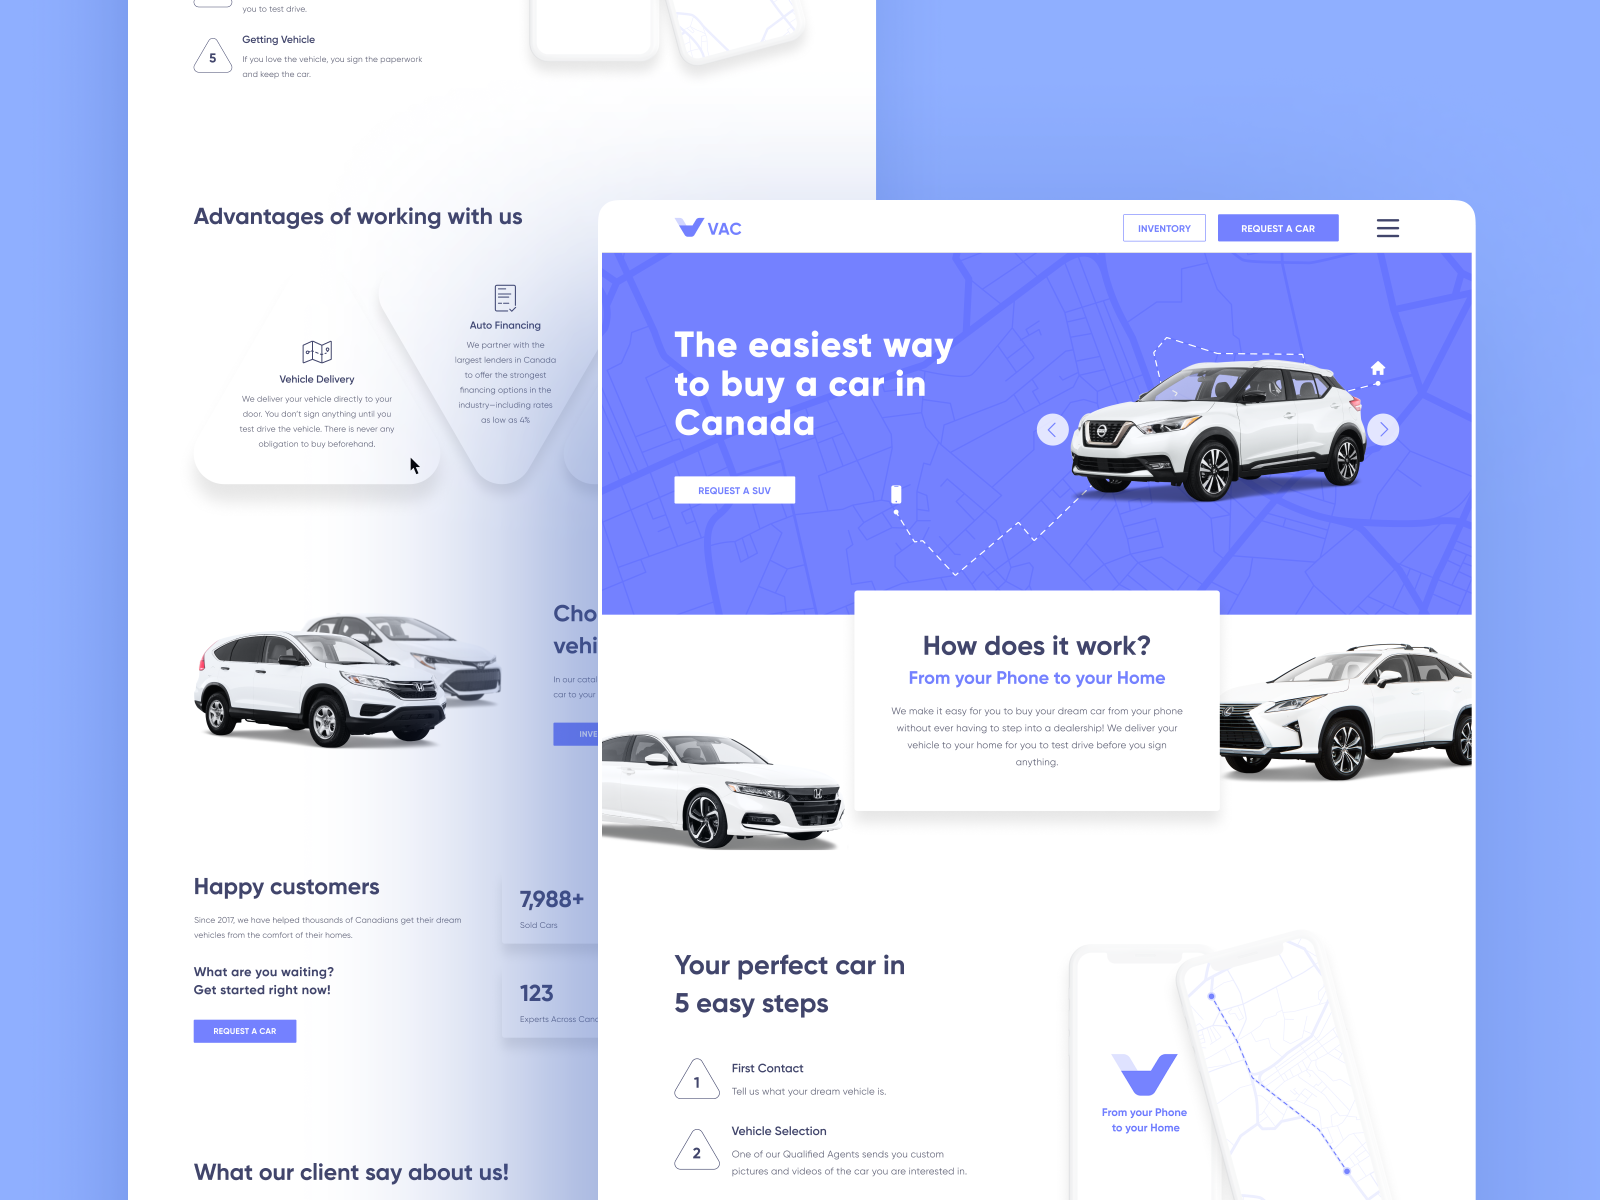 Vac Website Detail By Din Relik For Interactive Design On Dribbble